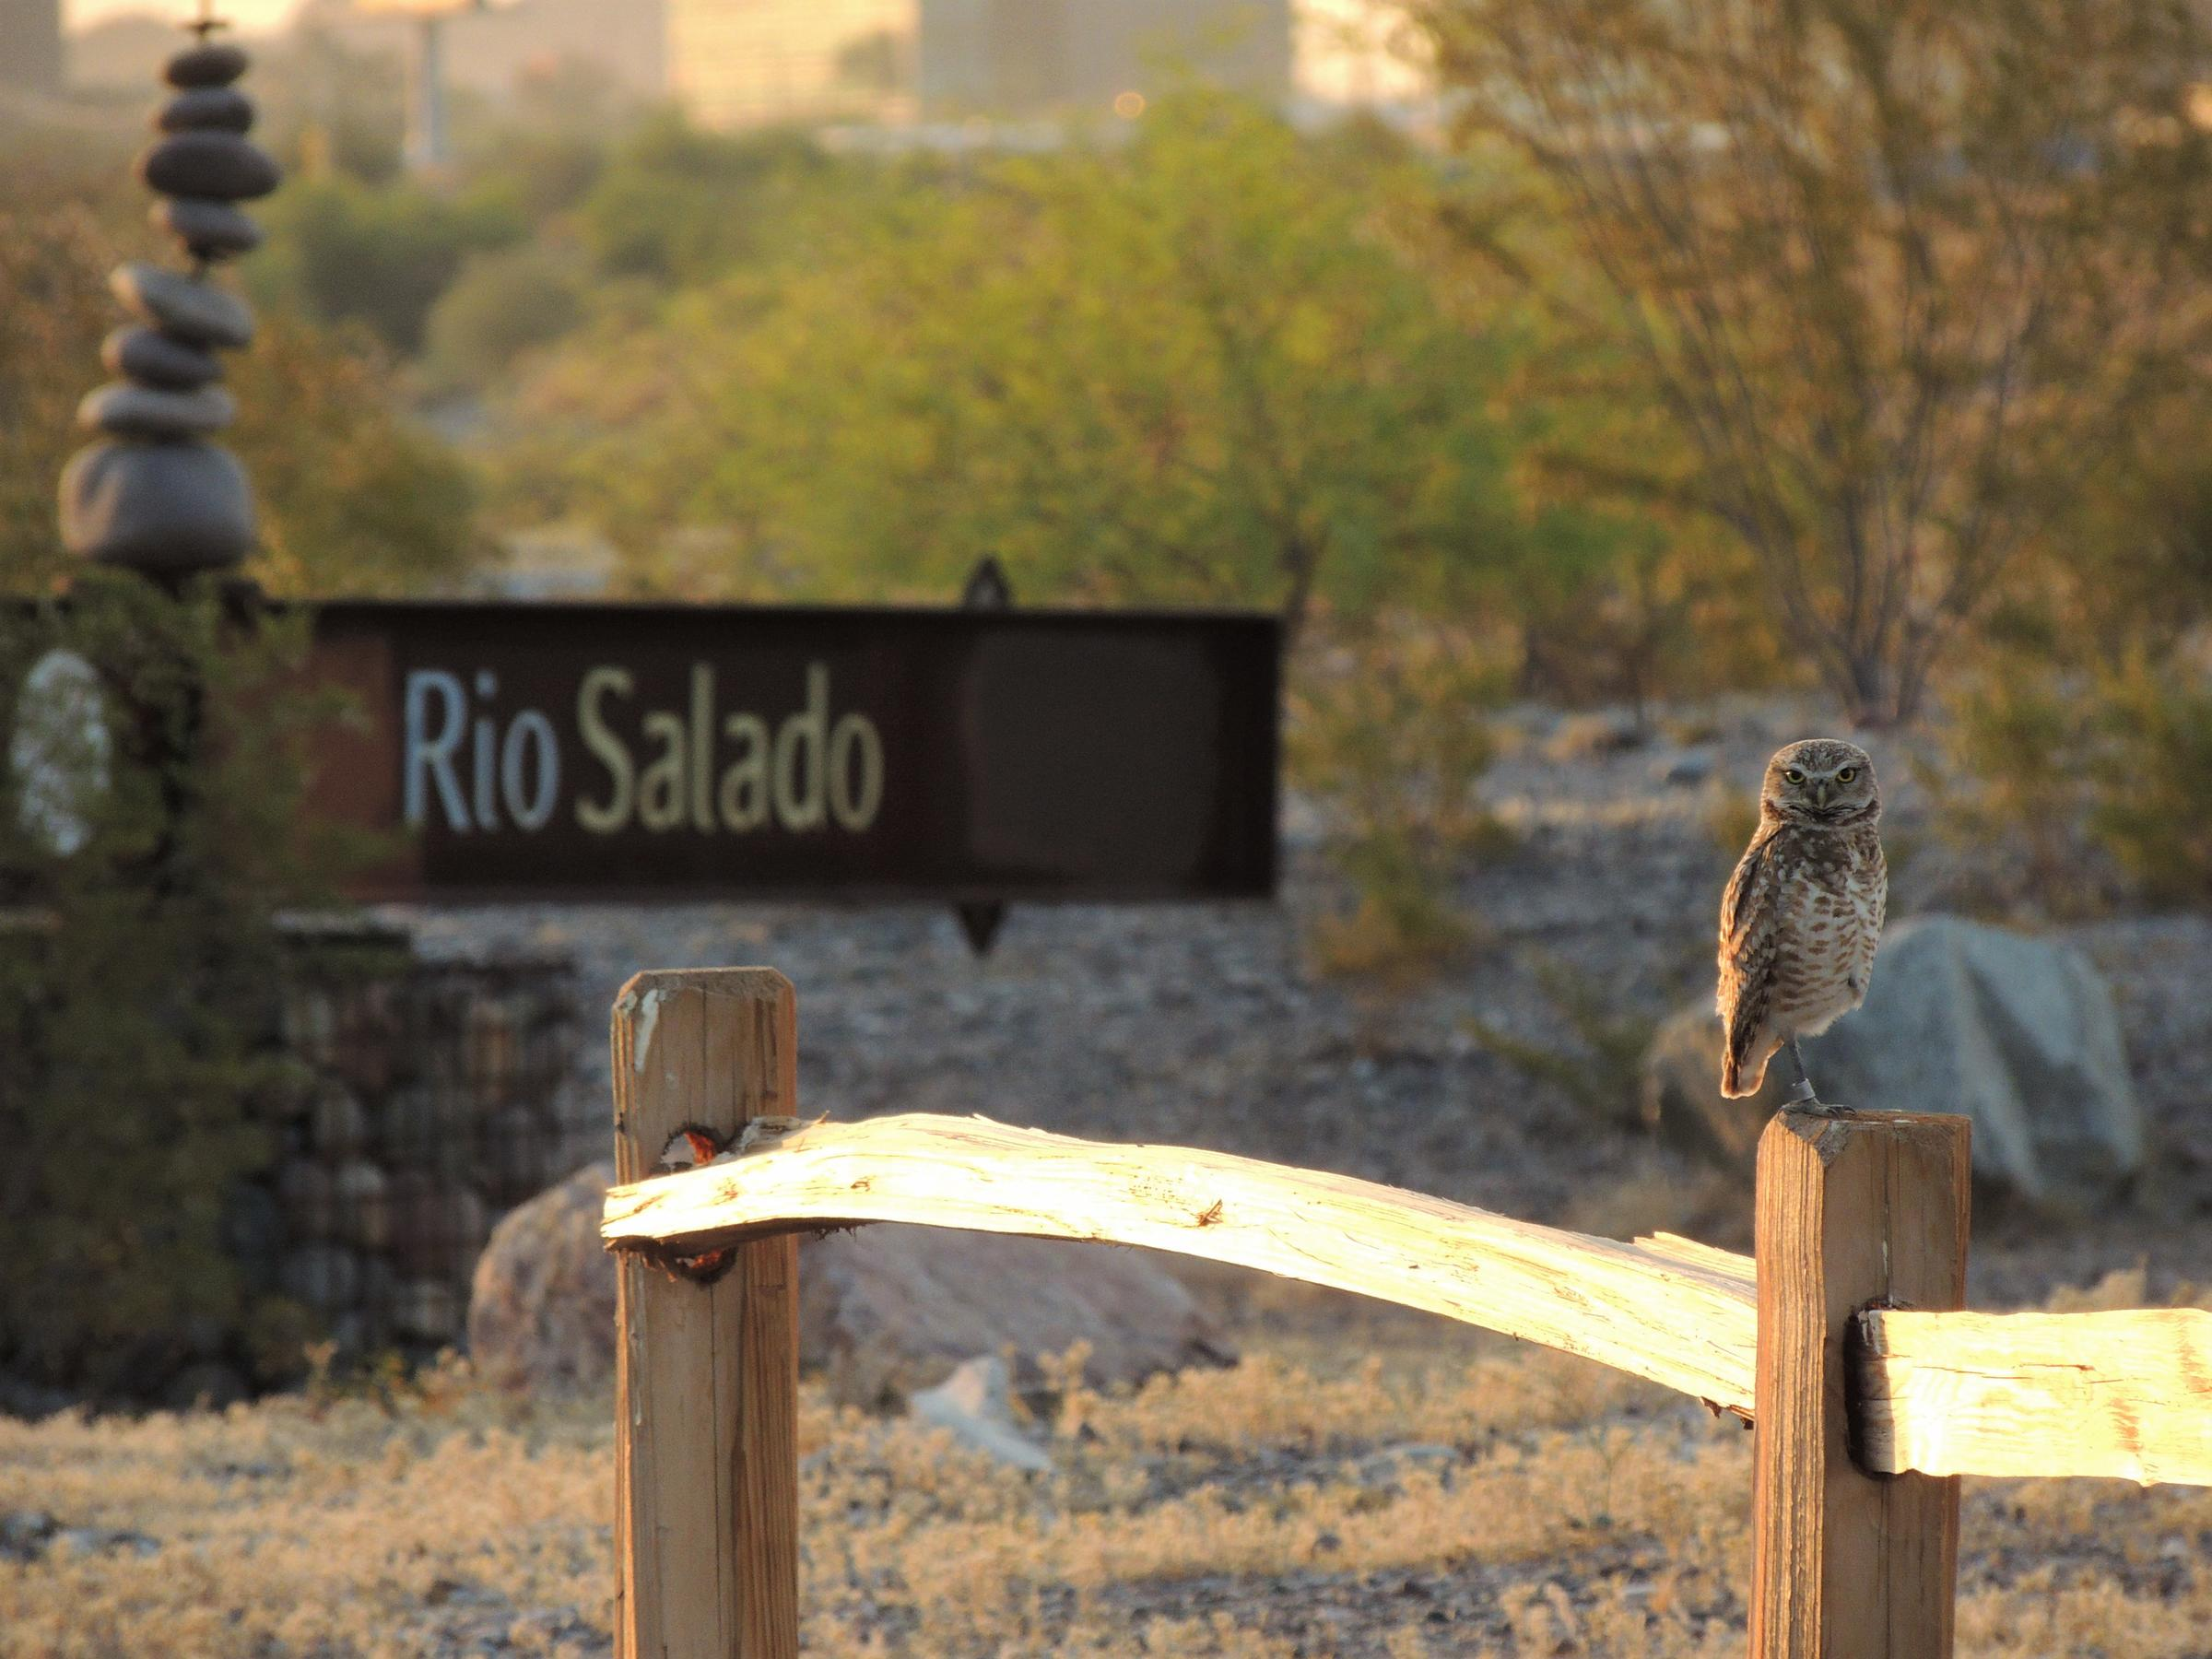 Burrowing Owl with Rio Salado sign and city skyline in the background